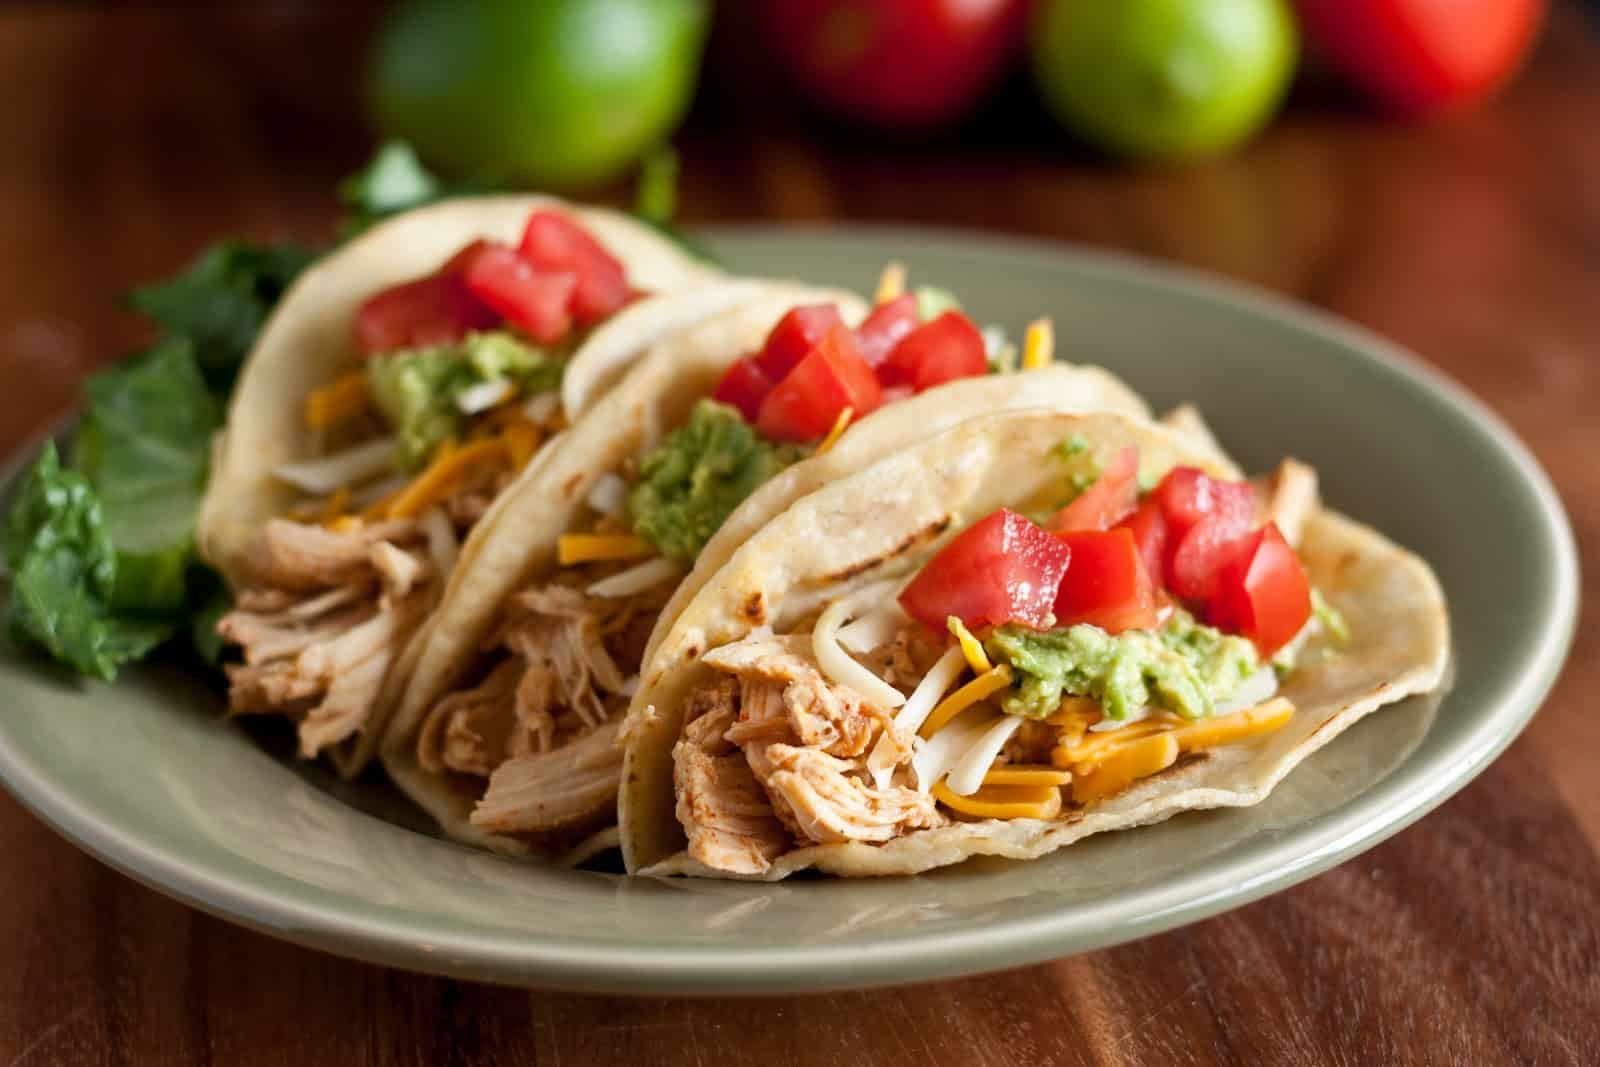 DIY Chicken Tacos, Friday Night Snacks and More...